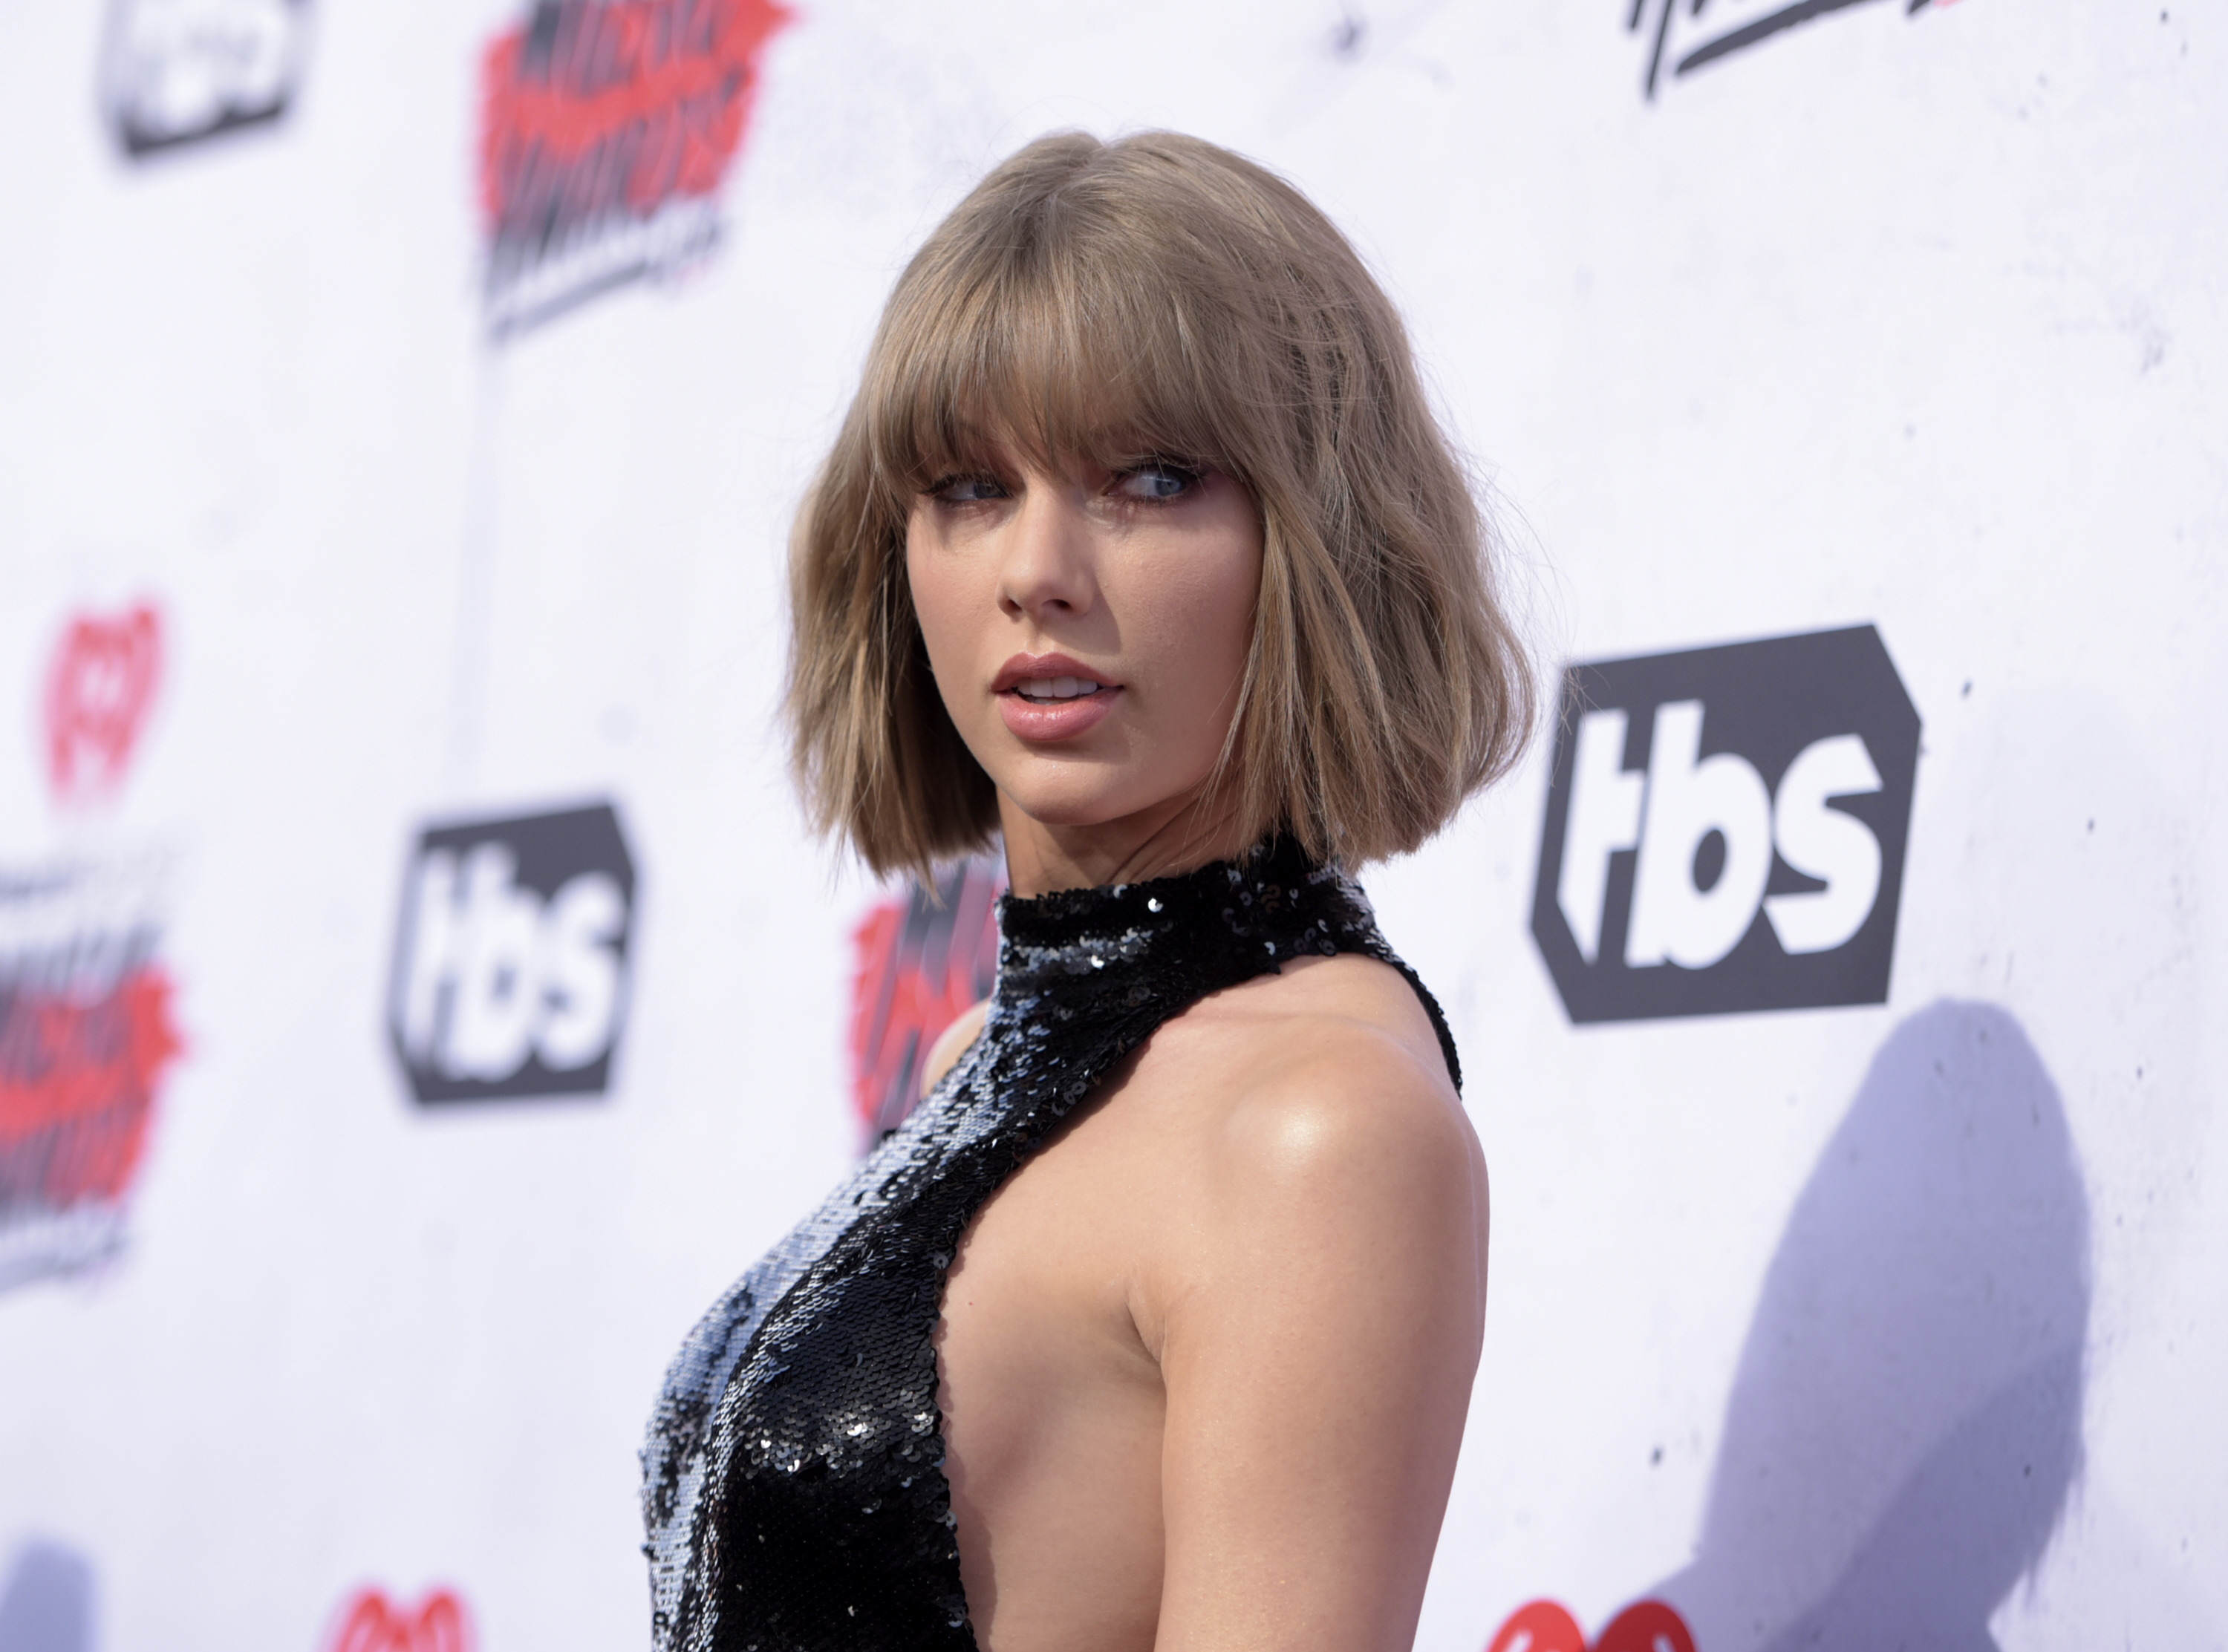 People Are Accusing Taylor Swift Of Getting Bum Implants Because Of This Photo PA 25975933